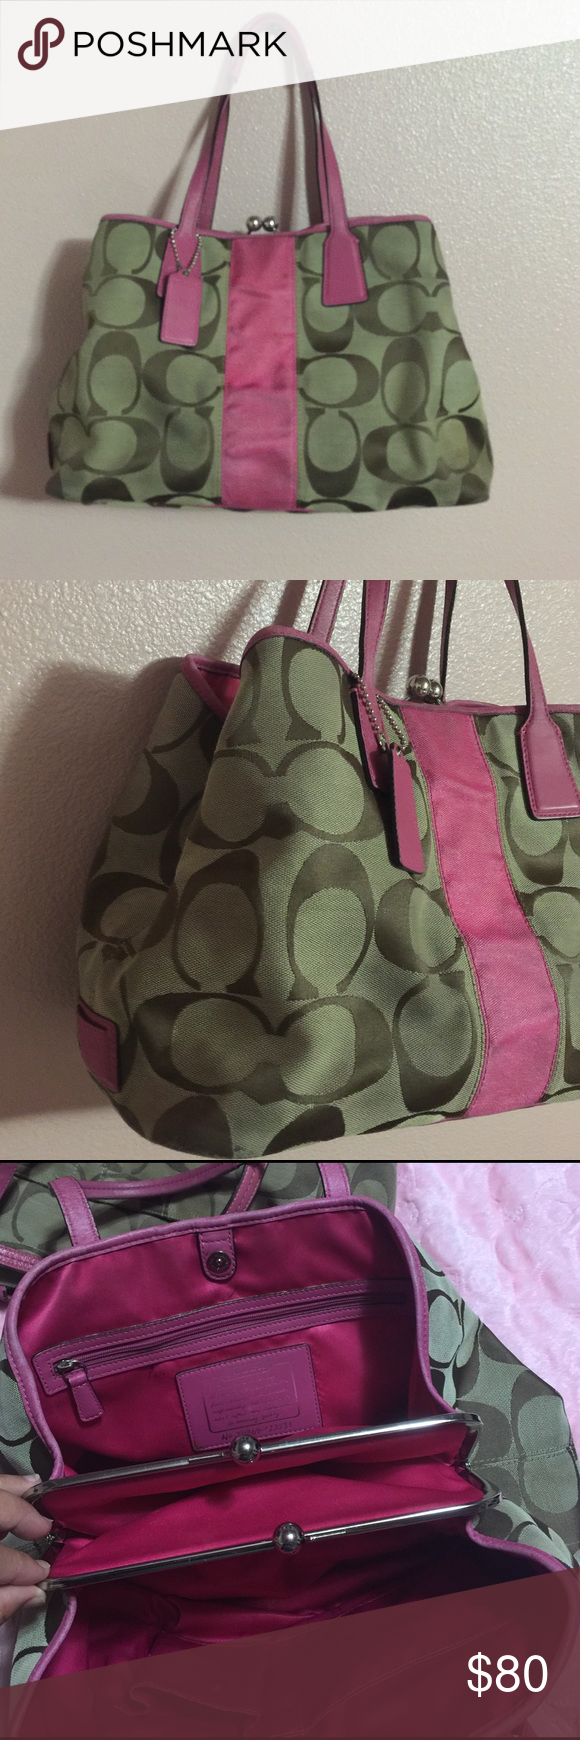 Coach signature purse Used purse but still has a lot of life. Special edition of coach . Medium size . A lot of rooms highly organized . There are some makes of use here and there but over all it's in good condition . Coach Bags Shoulder Bags